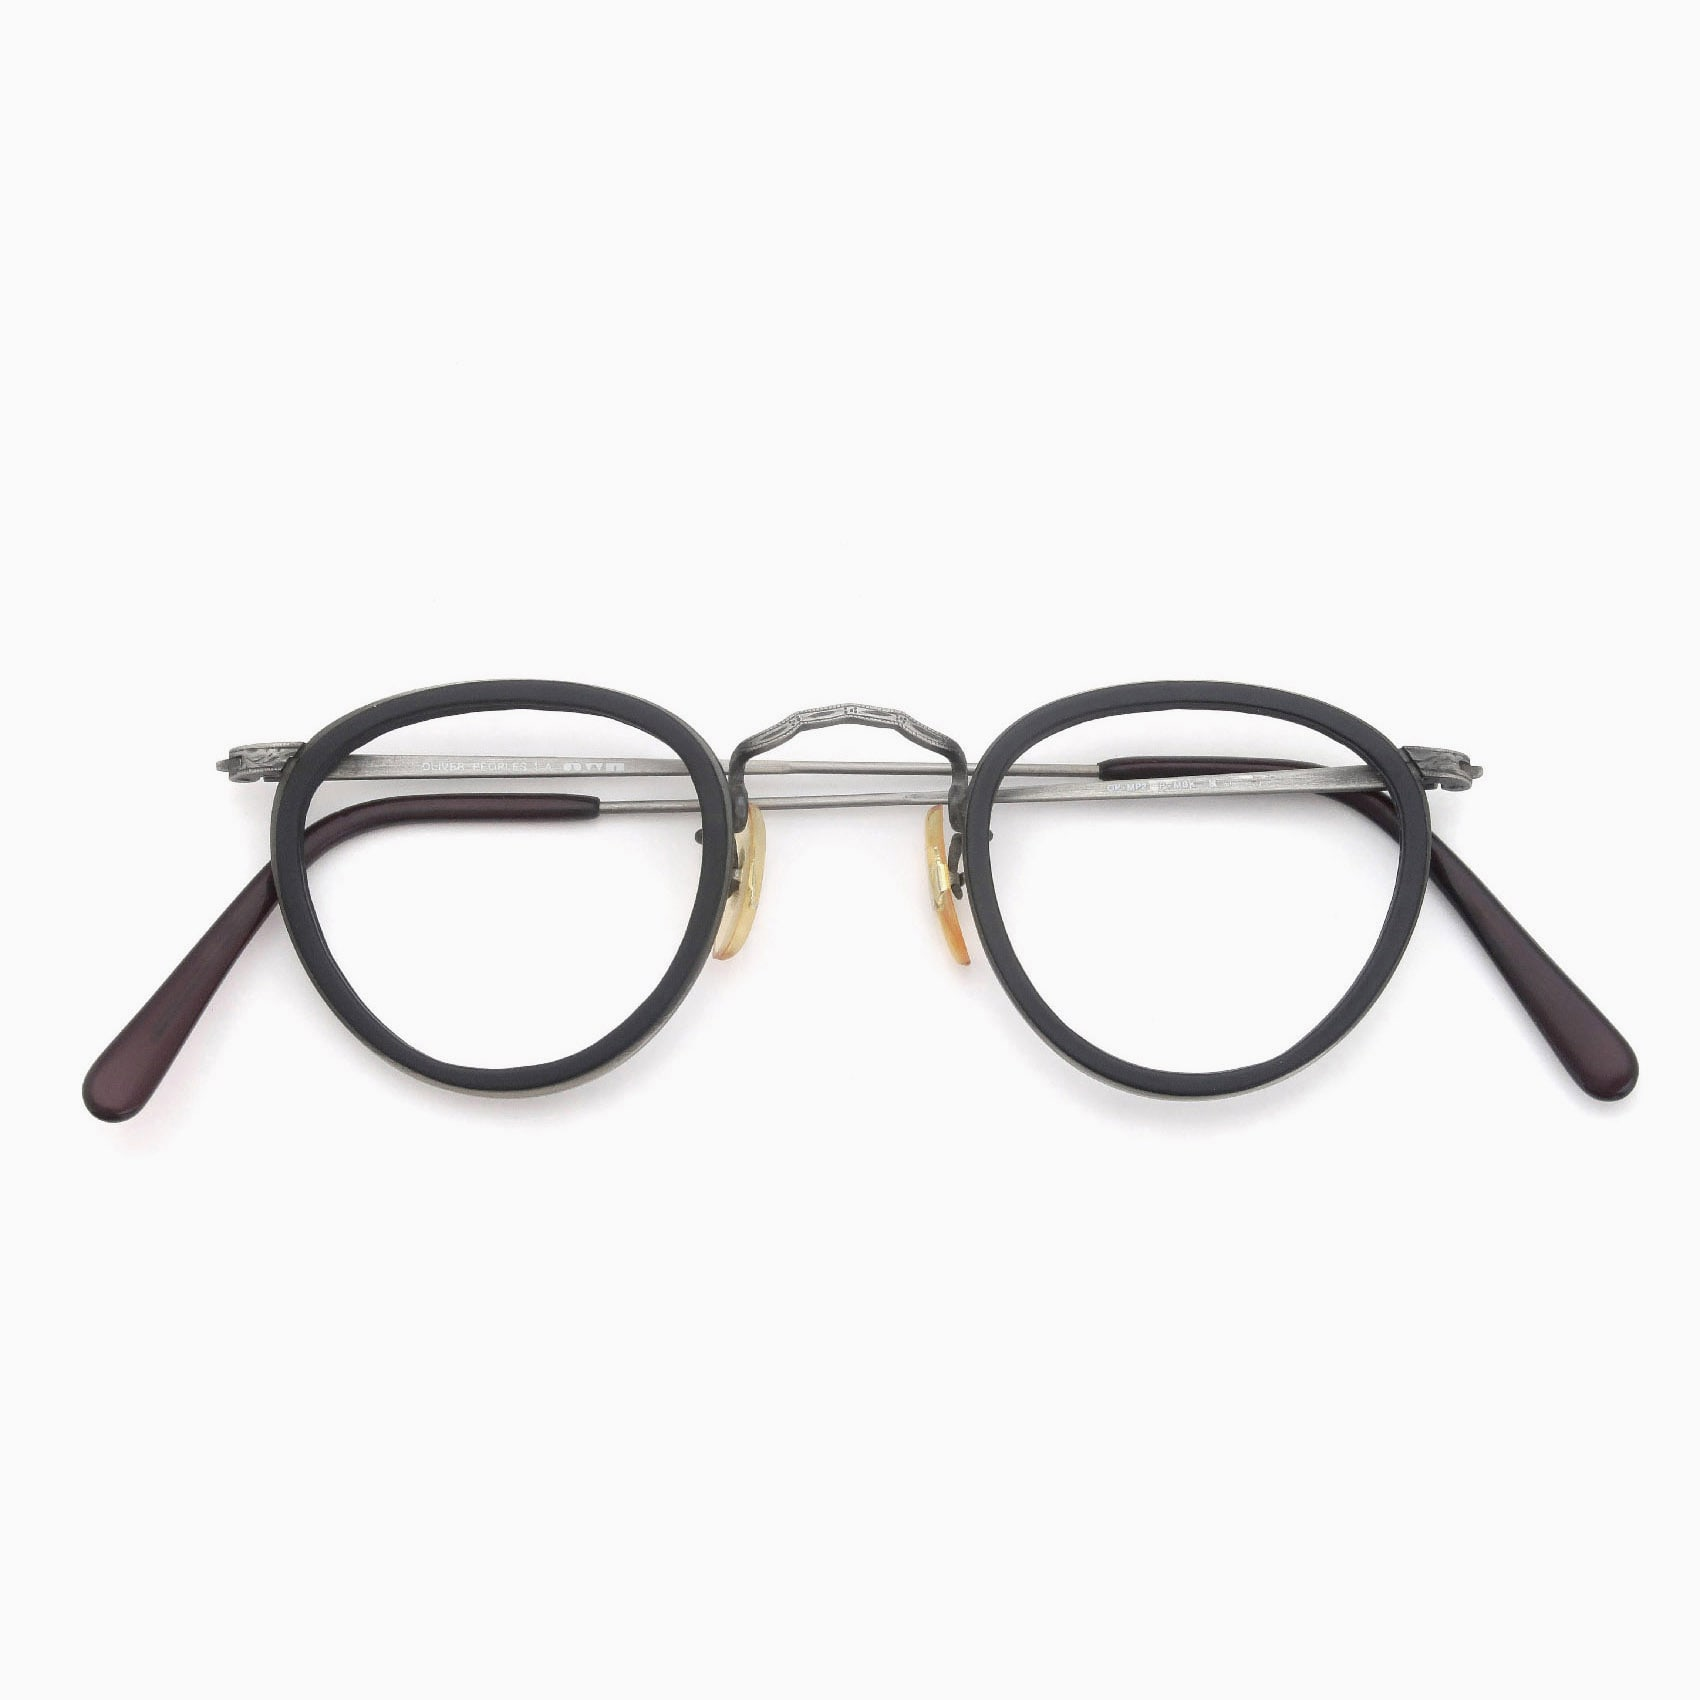 OLIVER-PEOPLES ARCHIVE OP-MP2 P-MBK